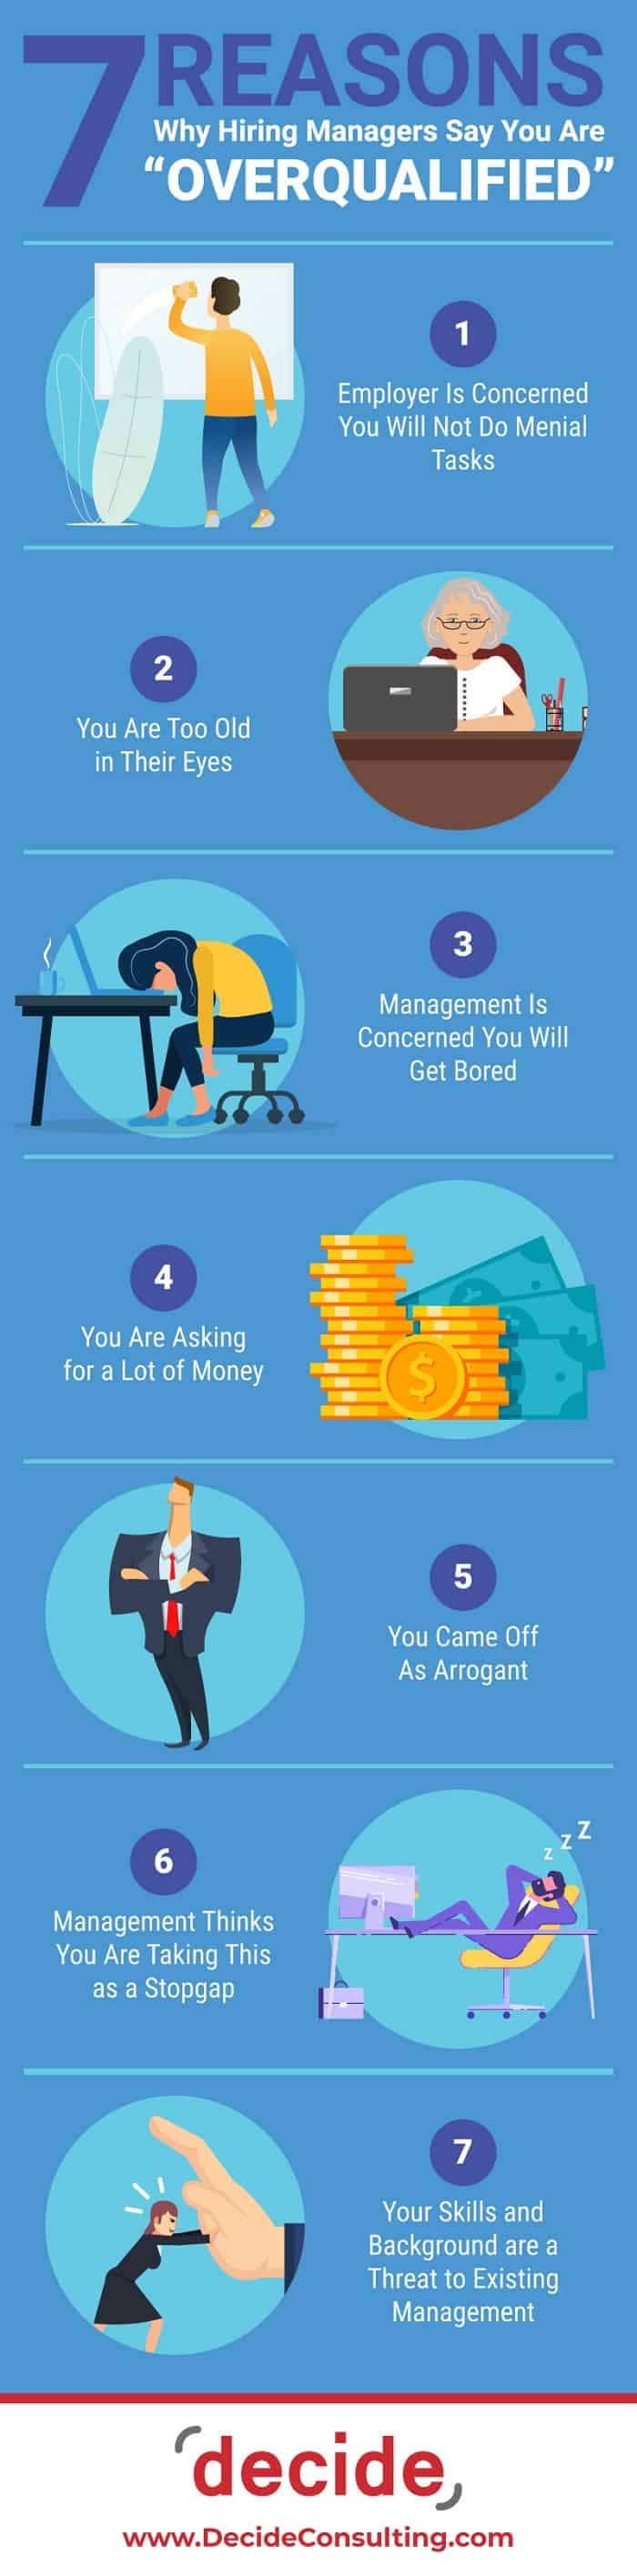 Infographic 7 Reasons Why Hiring Managers Say You Are OVERQUALIFIED